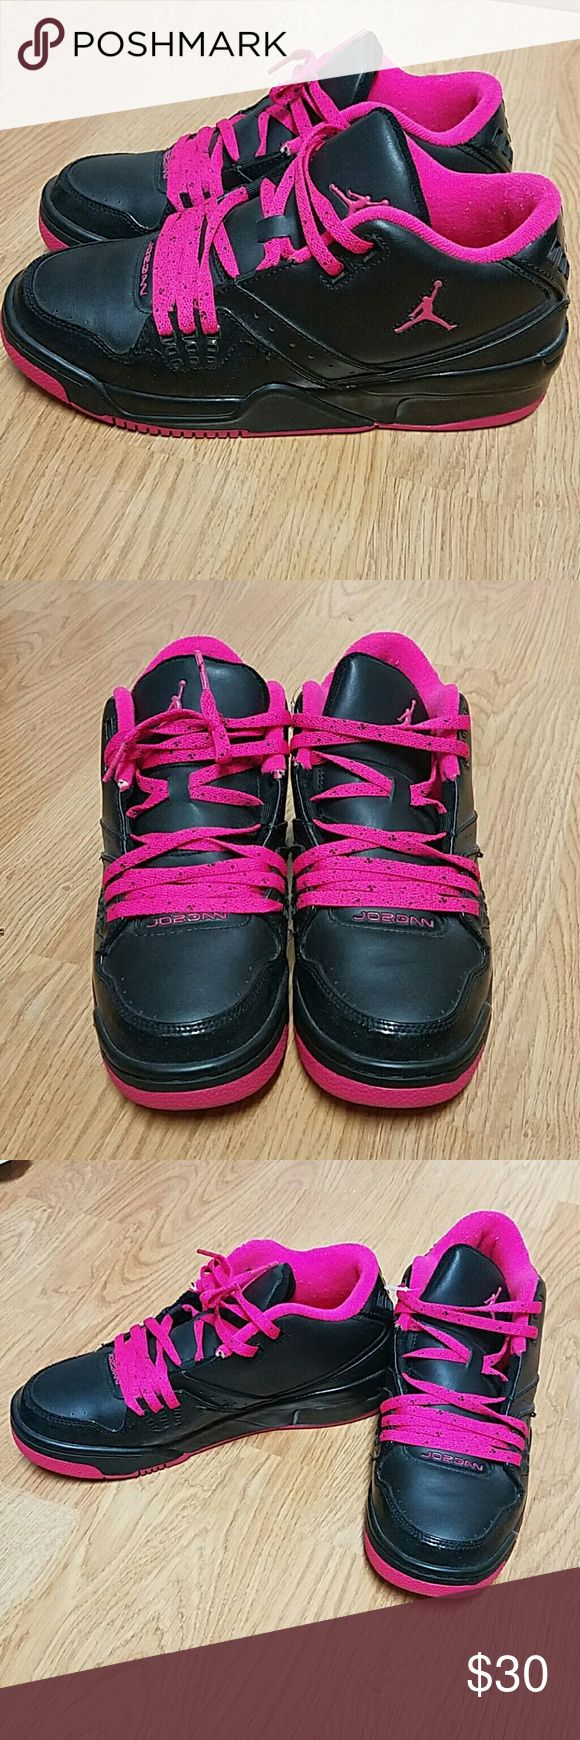 Kids Jordan sneaker Jordan black and hot pink sneakers. Excellent condition.worn only once Jordan Shoes